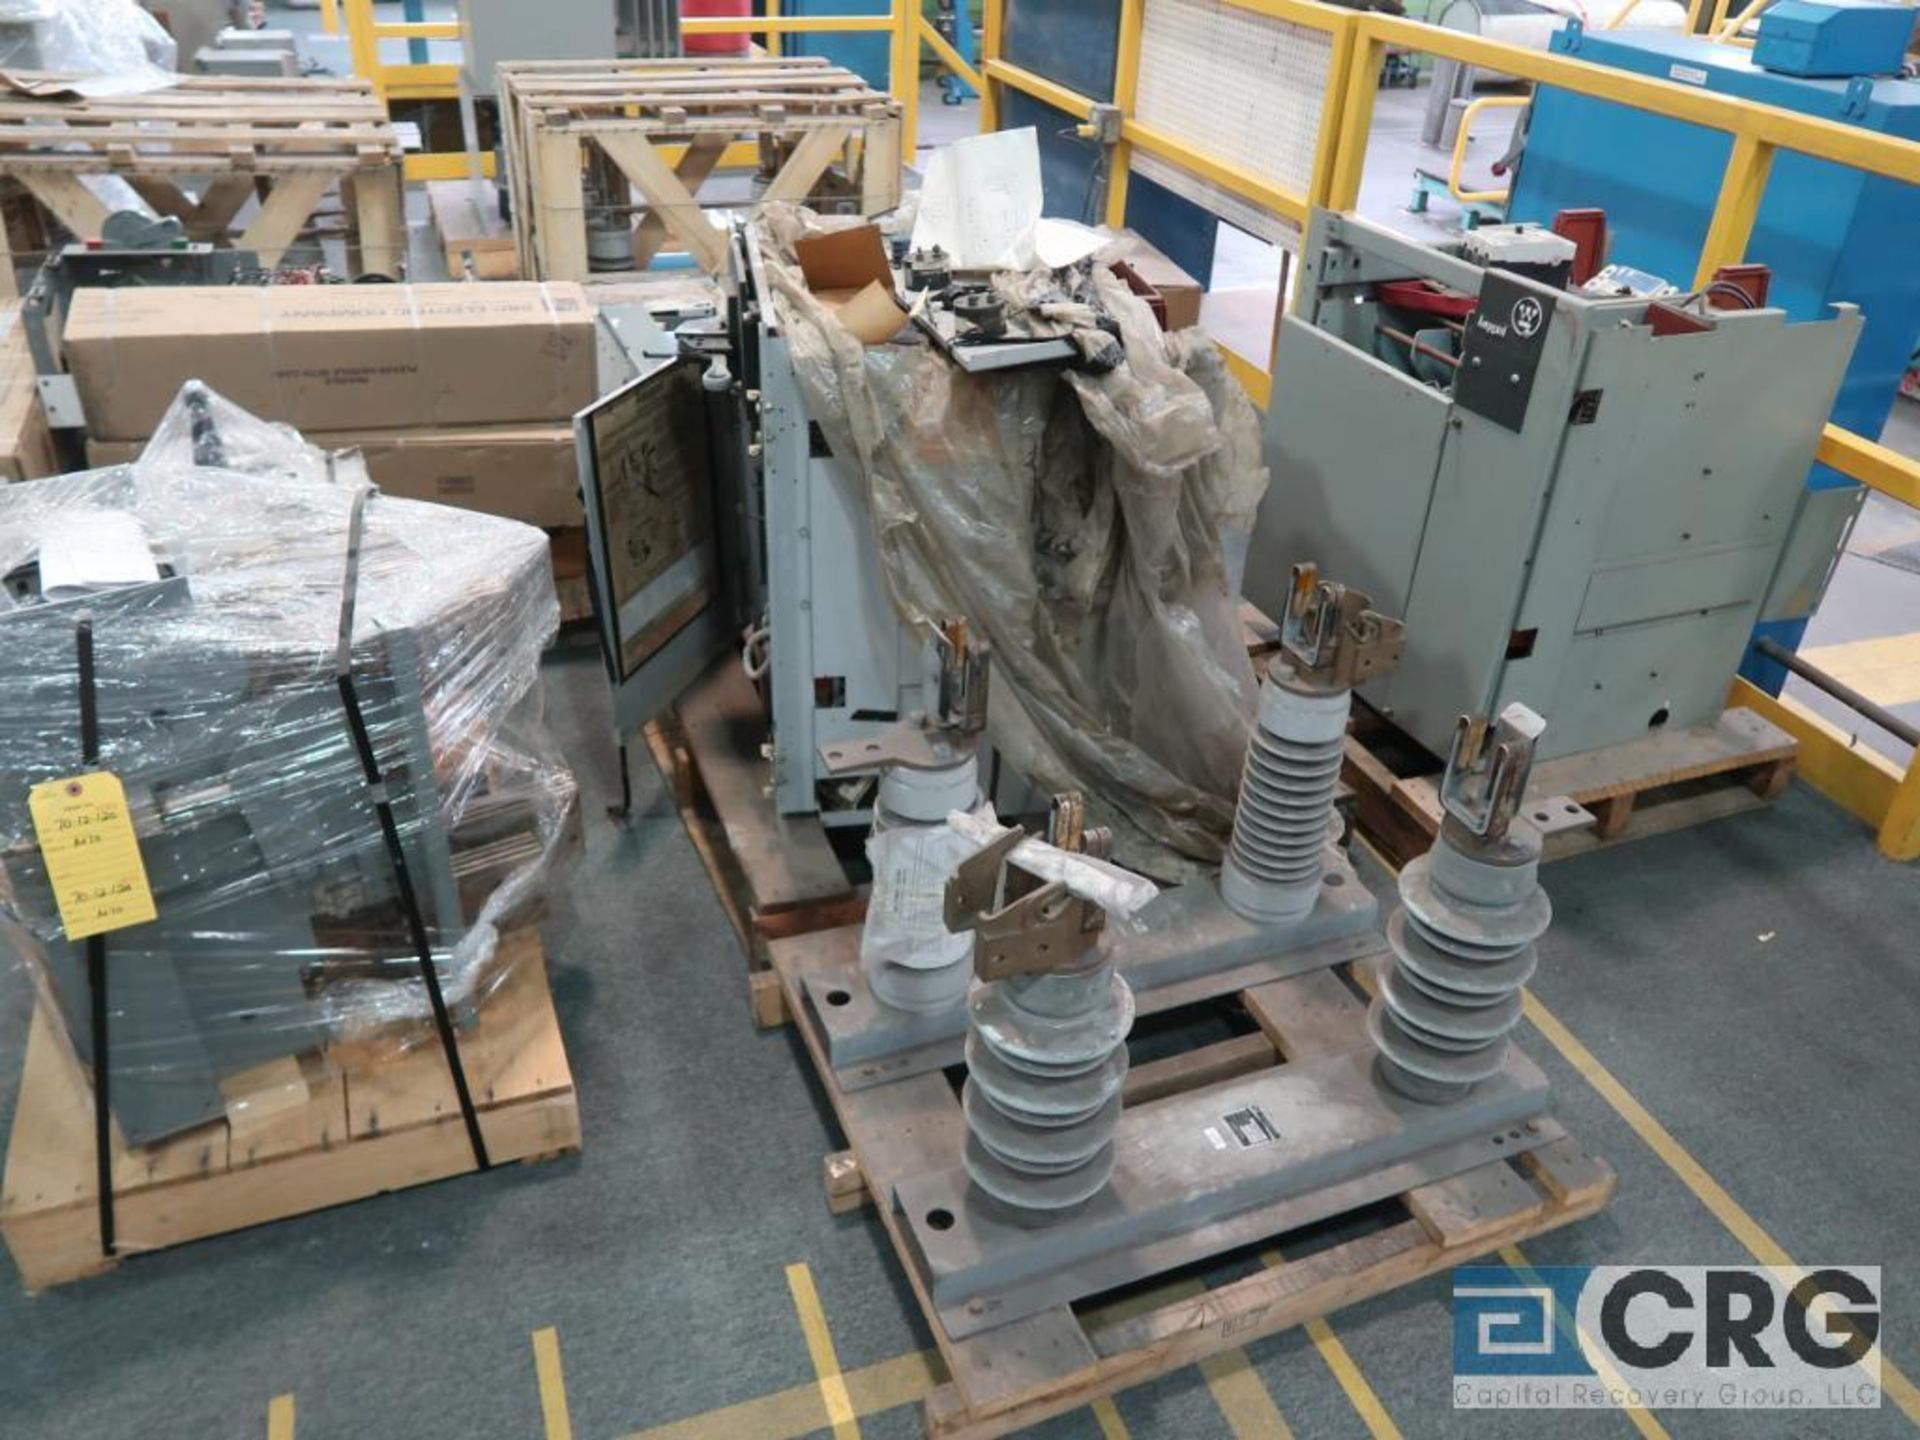 Lot of (8) pallets of electrical including fuse holders, amgard, and breakers (Finish Building) - Image 3 of 3